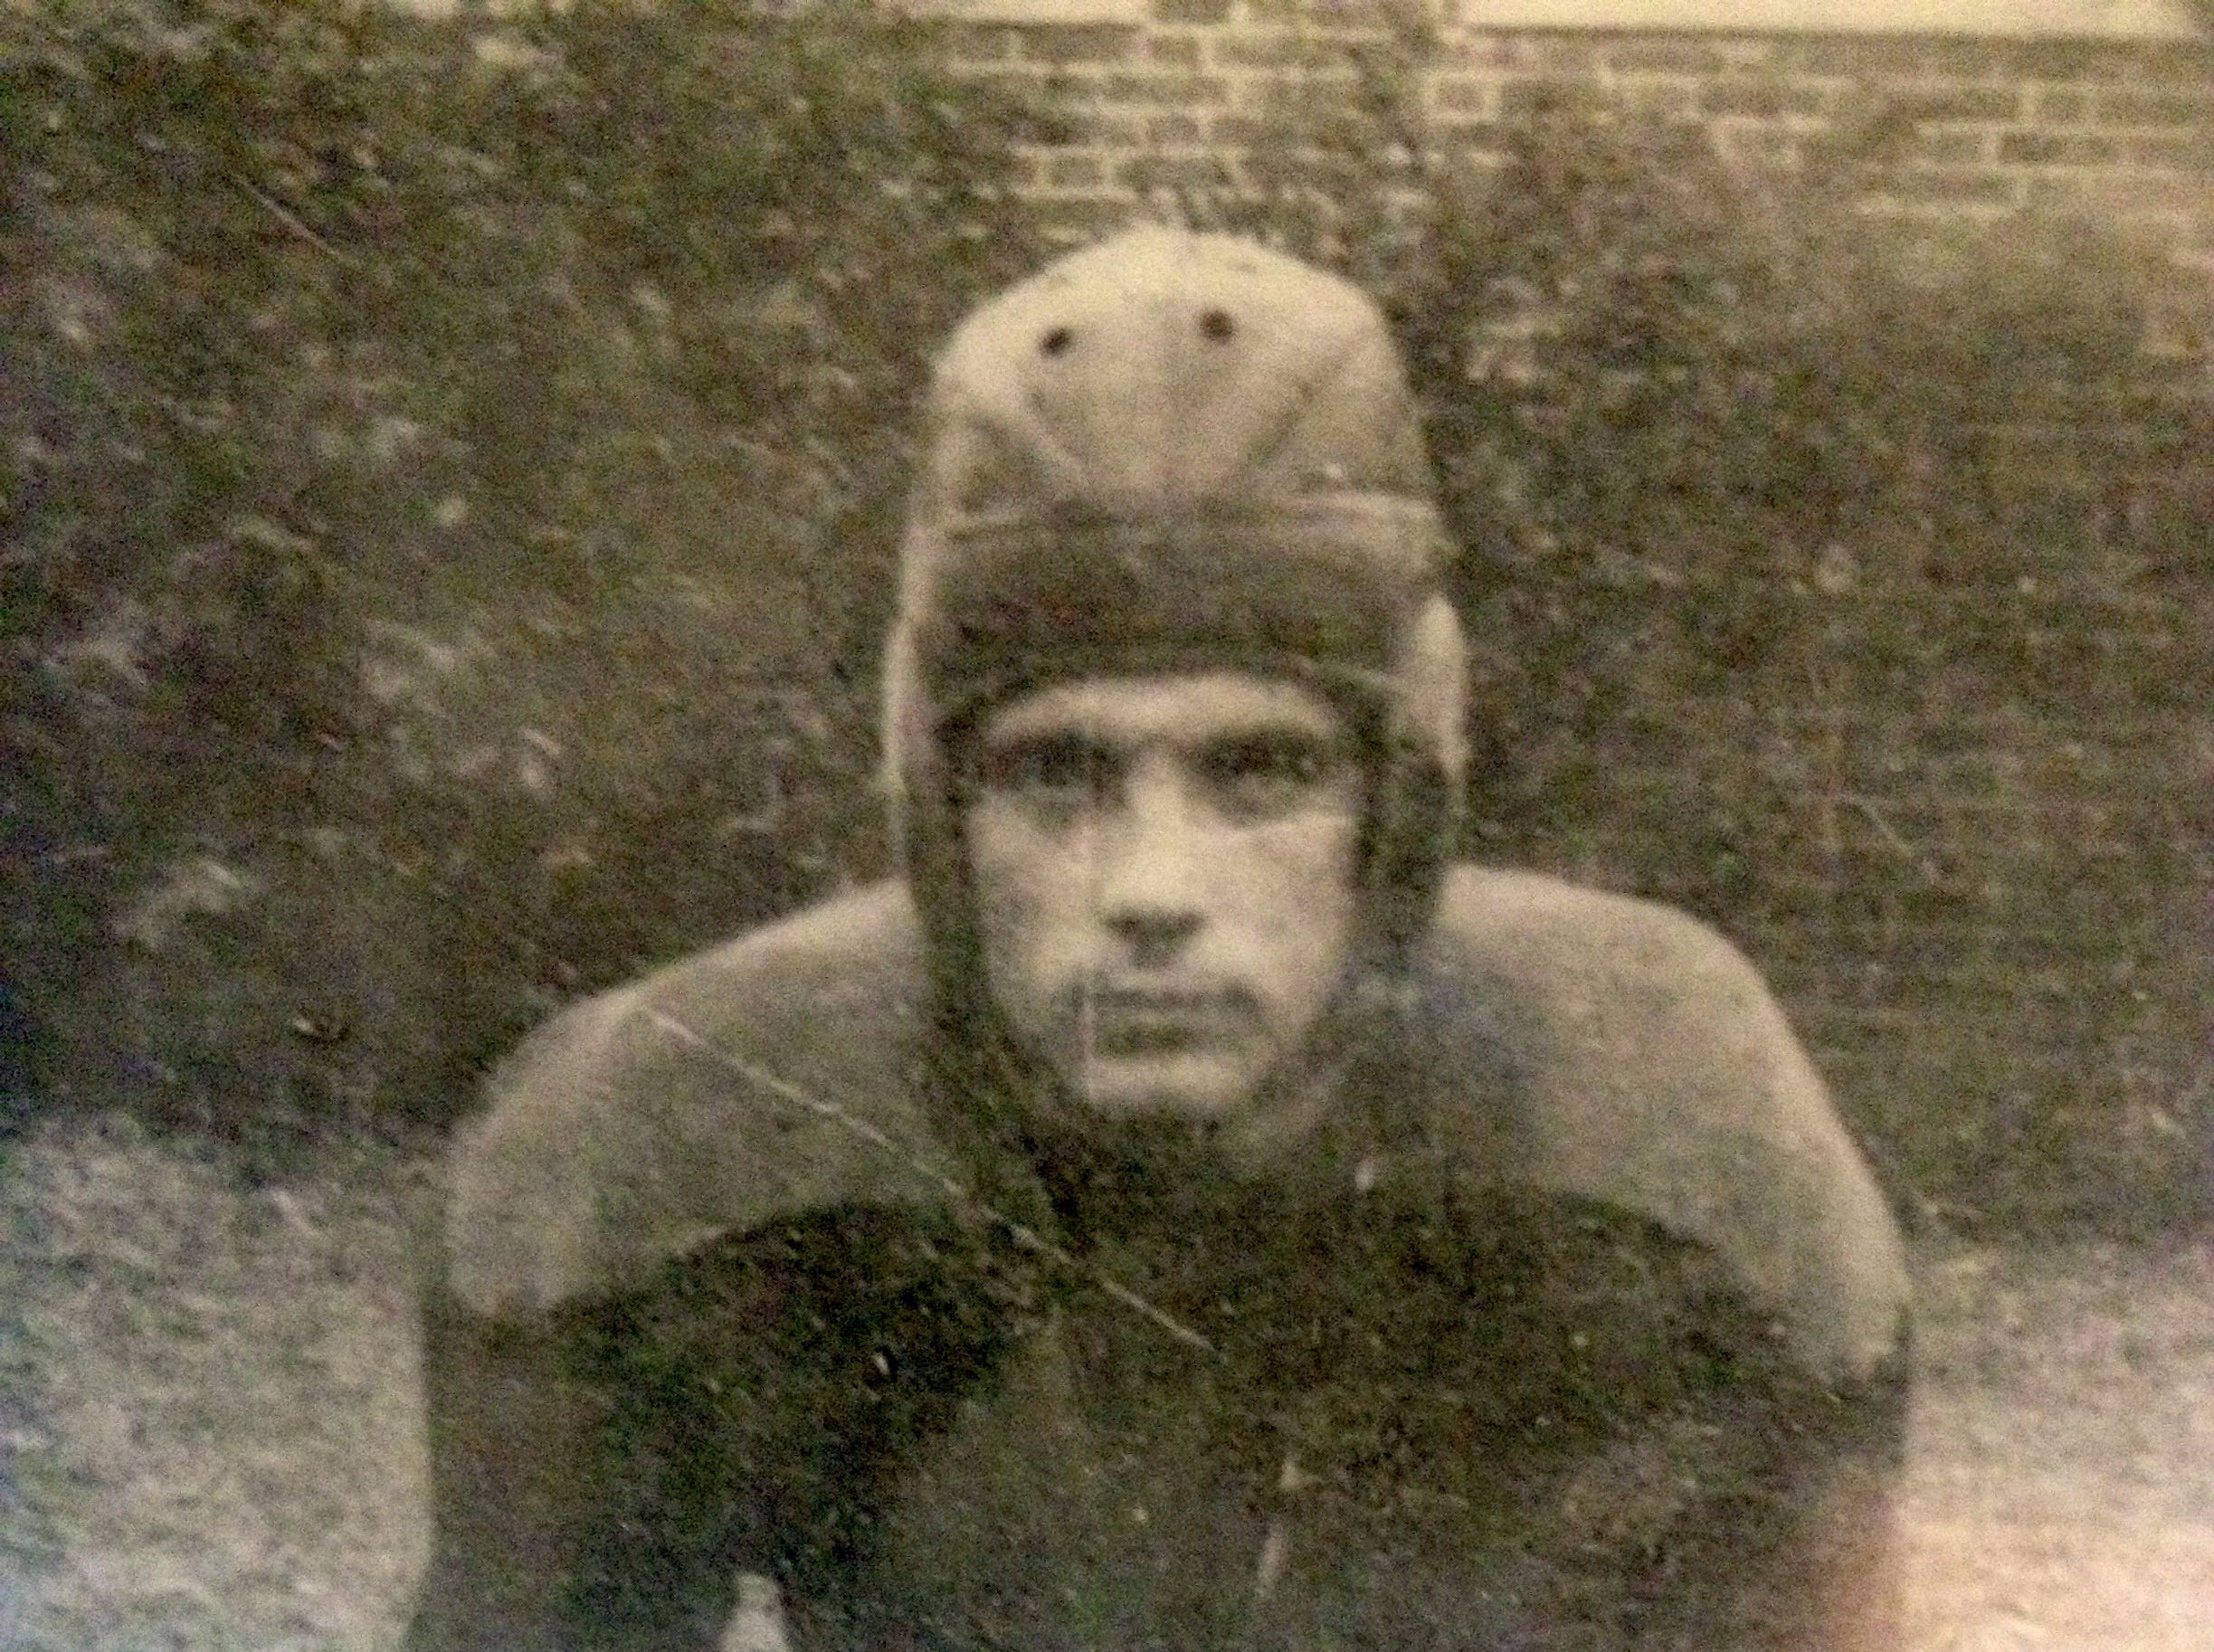 C.R. Clough was captain of the Clinton High School football team his senior year, 1937.